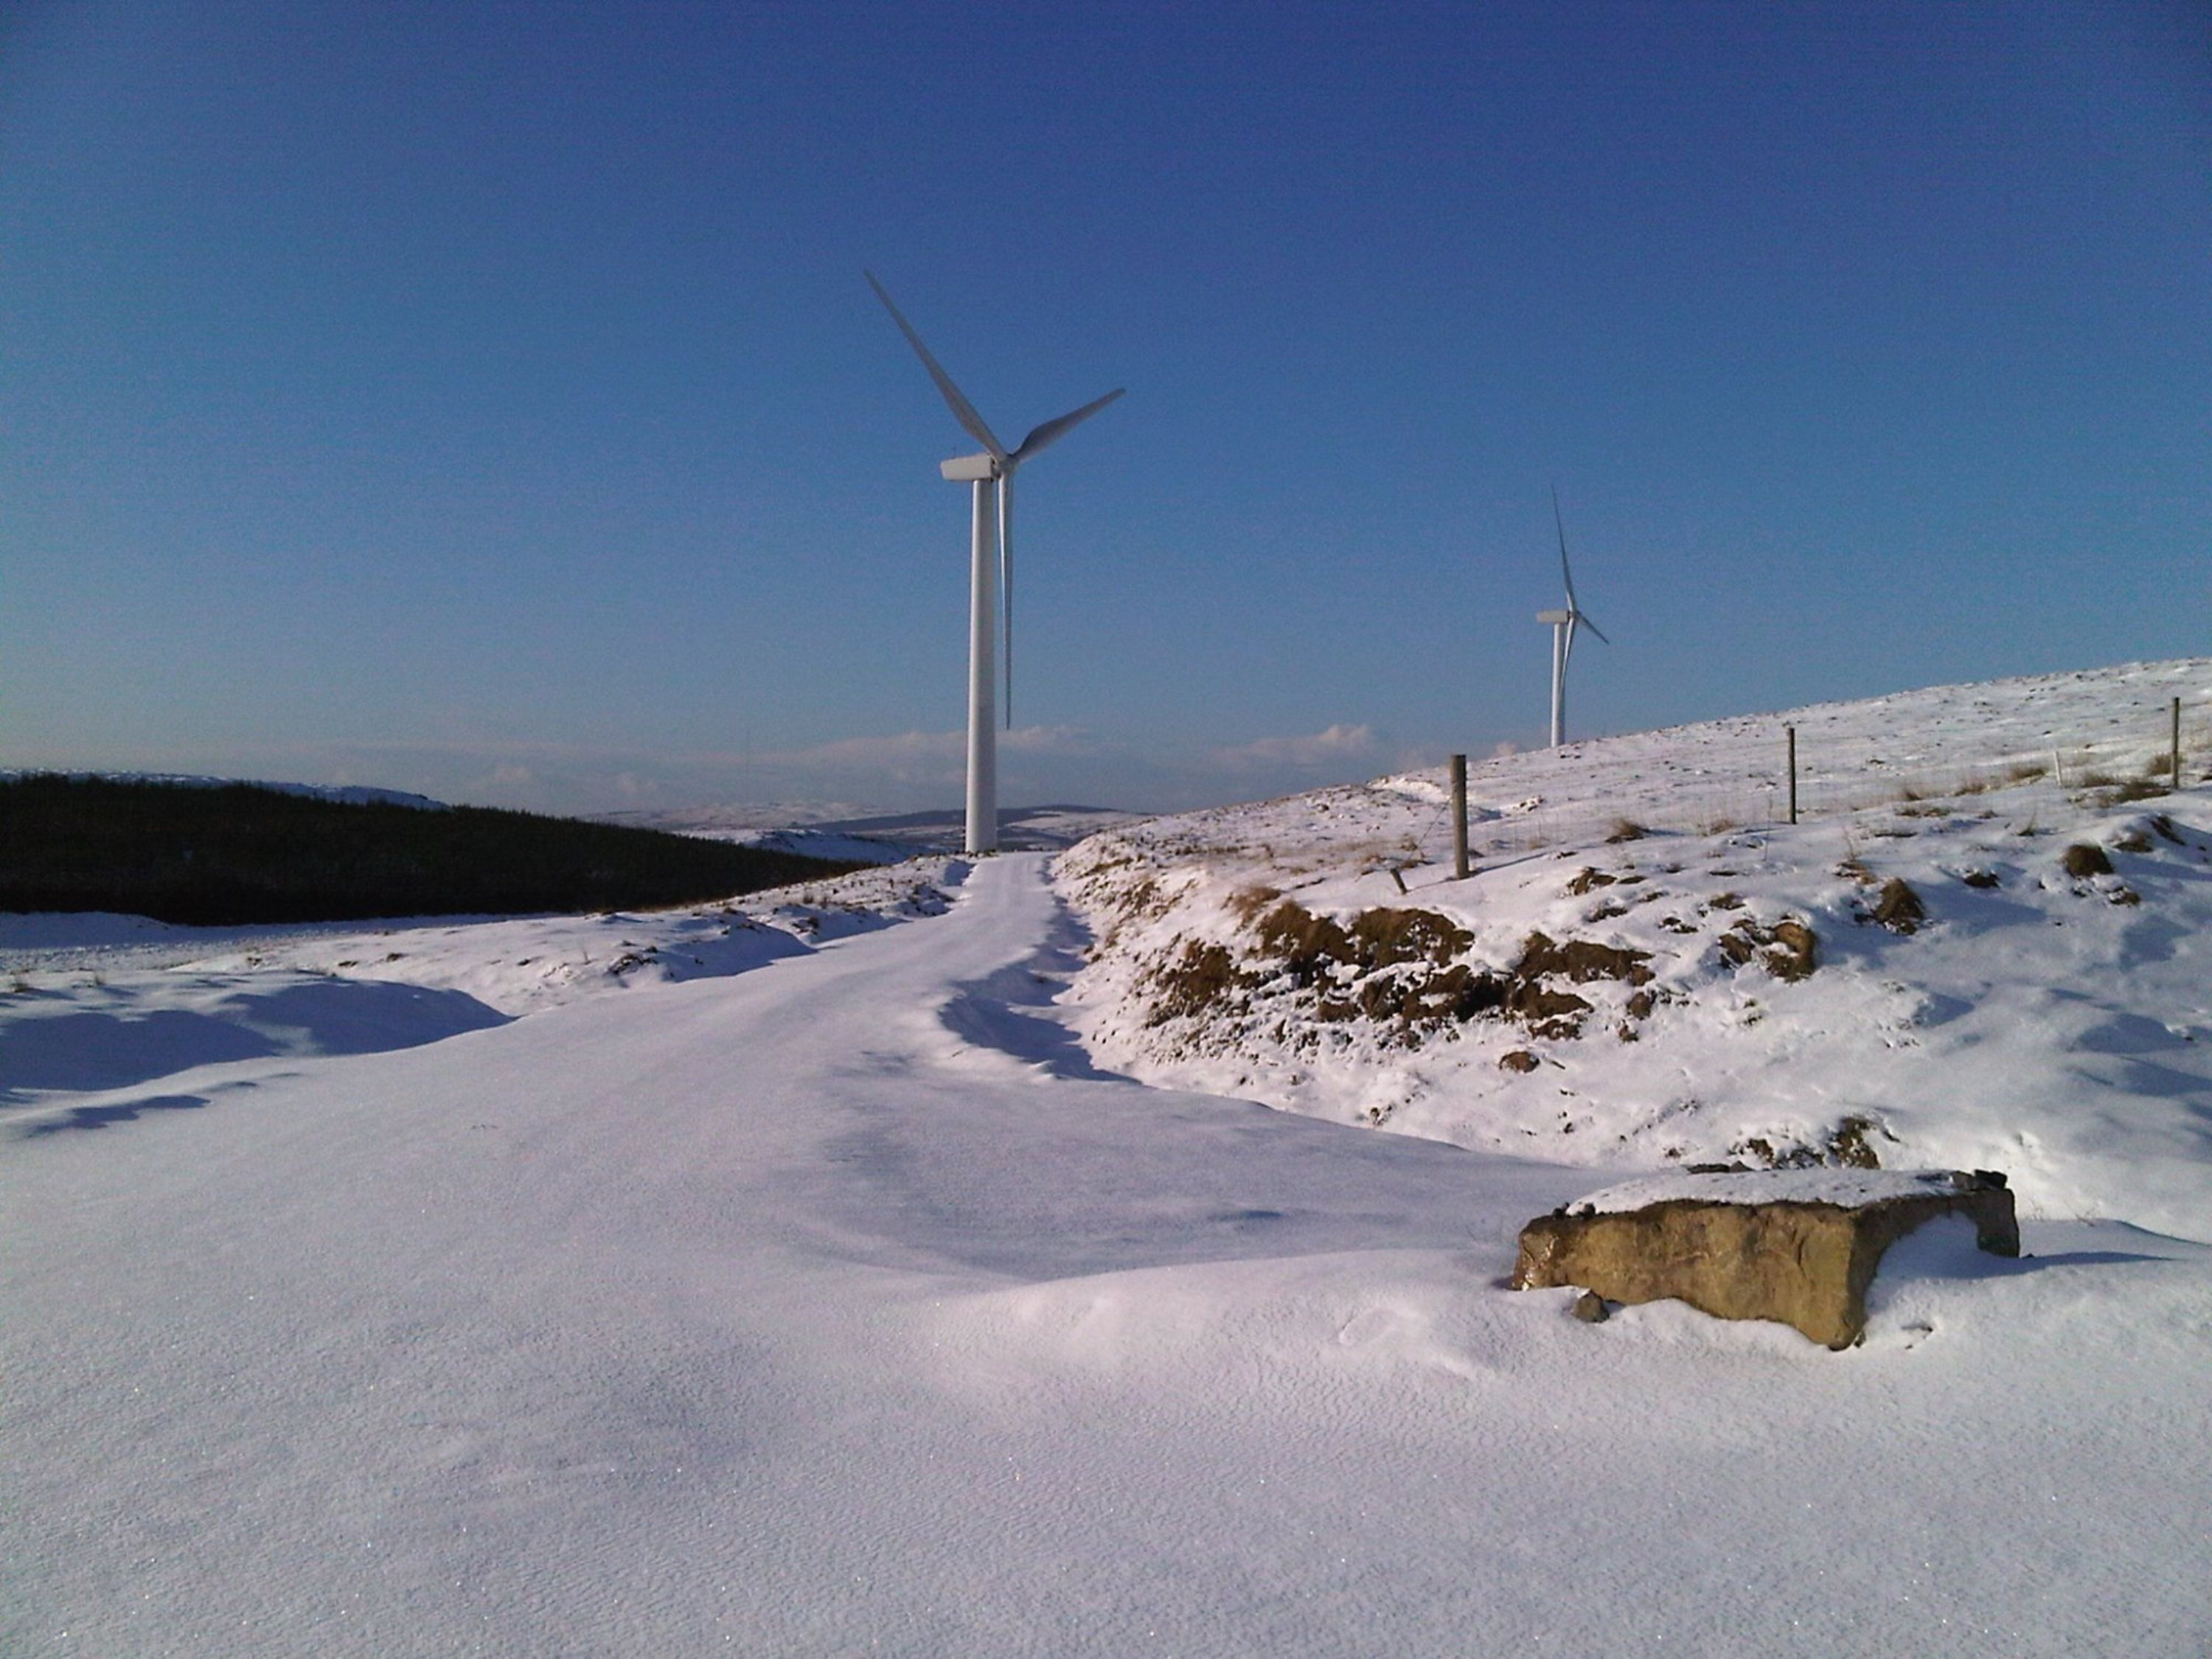 Photo taken by Francis McKenna for Global Wind Day Competition 2013